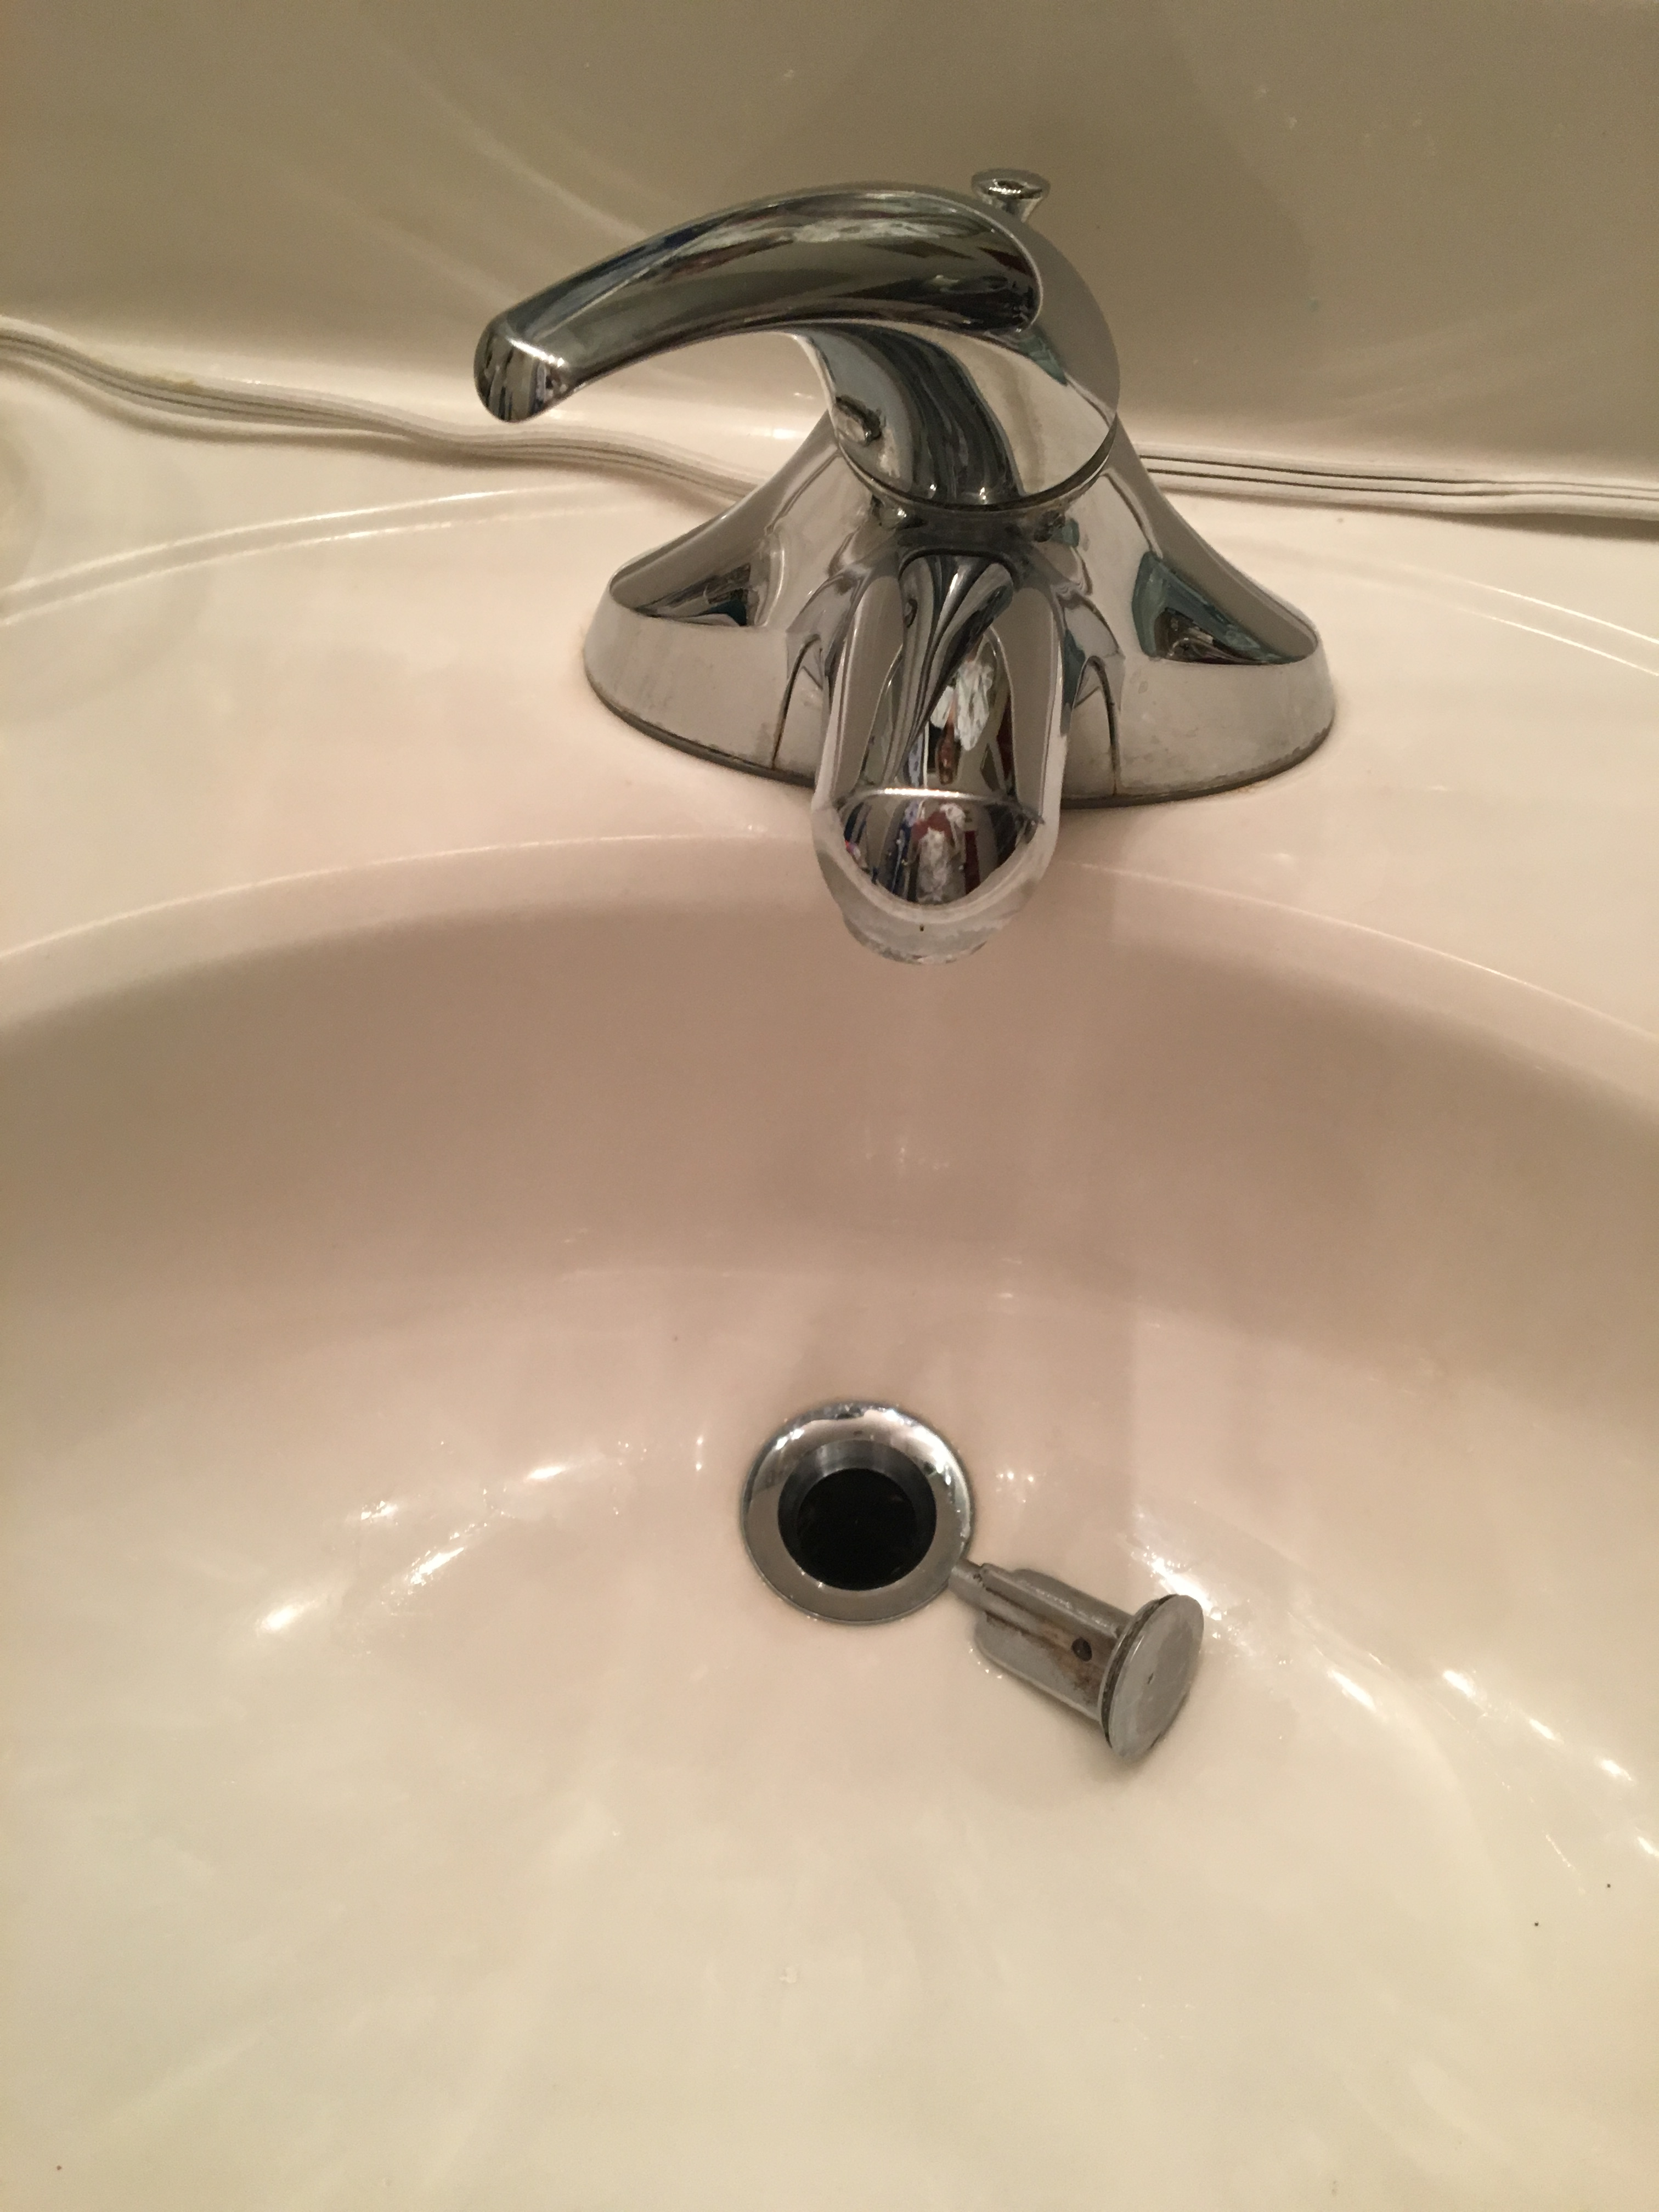 Sink Shroom Quick Fix For Broken Bathroom Sink Stopper And Clog - How to fix a clogged bathroom sink